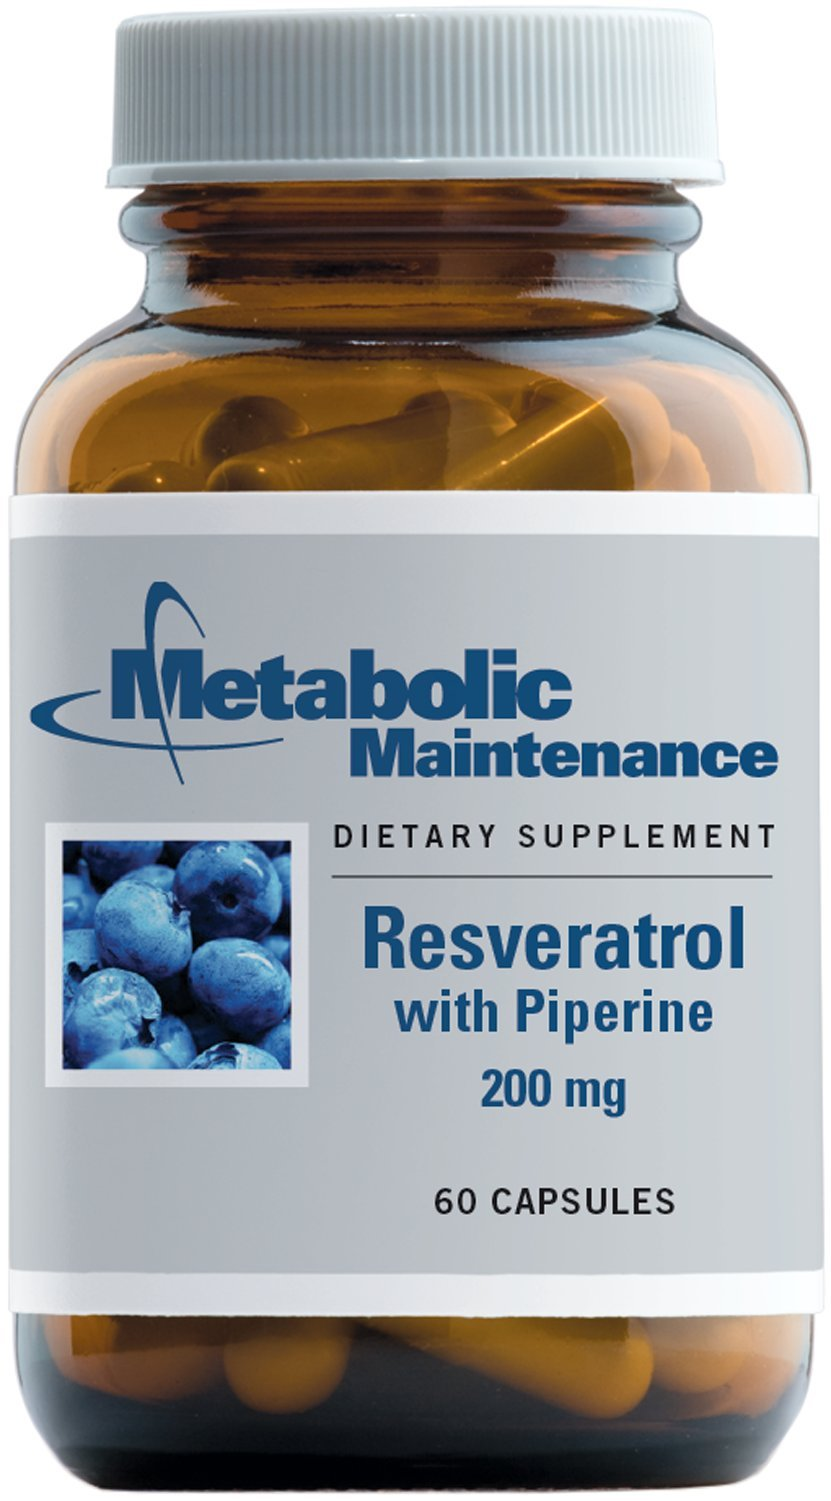 Metabolic Maintenance Resveratrol with Piperine - Antioxidant + Cardiovascular Support with Superior Absorption (60 Capsules)